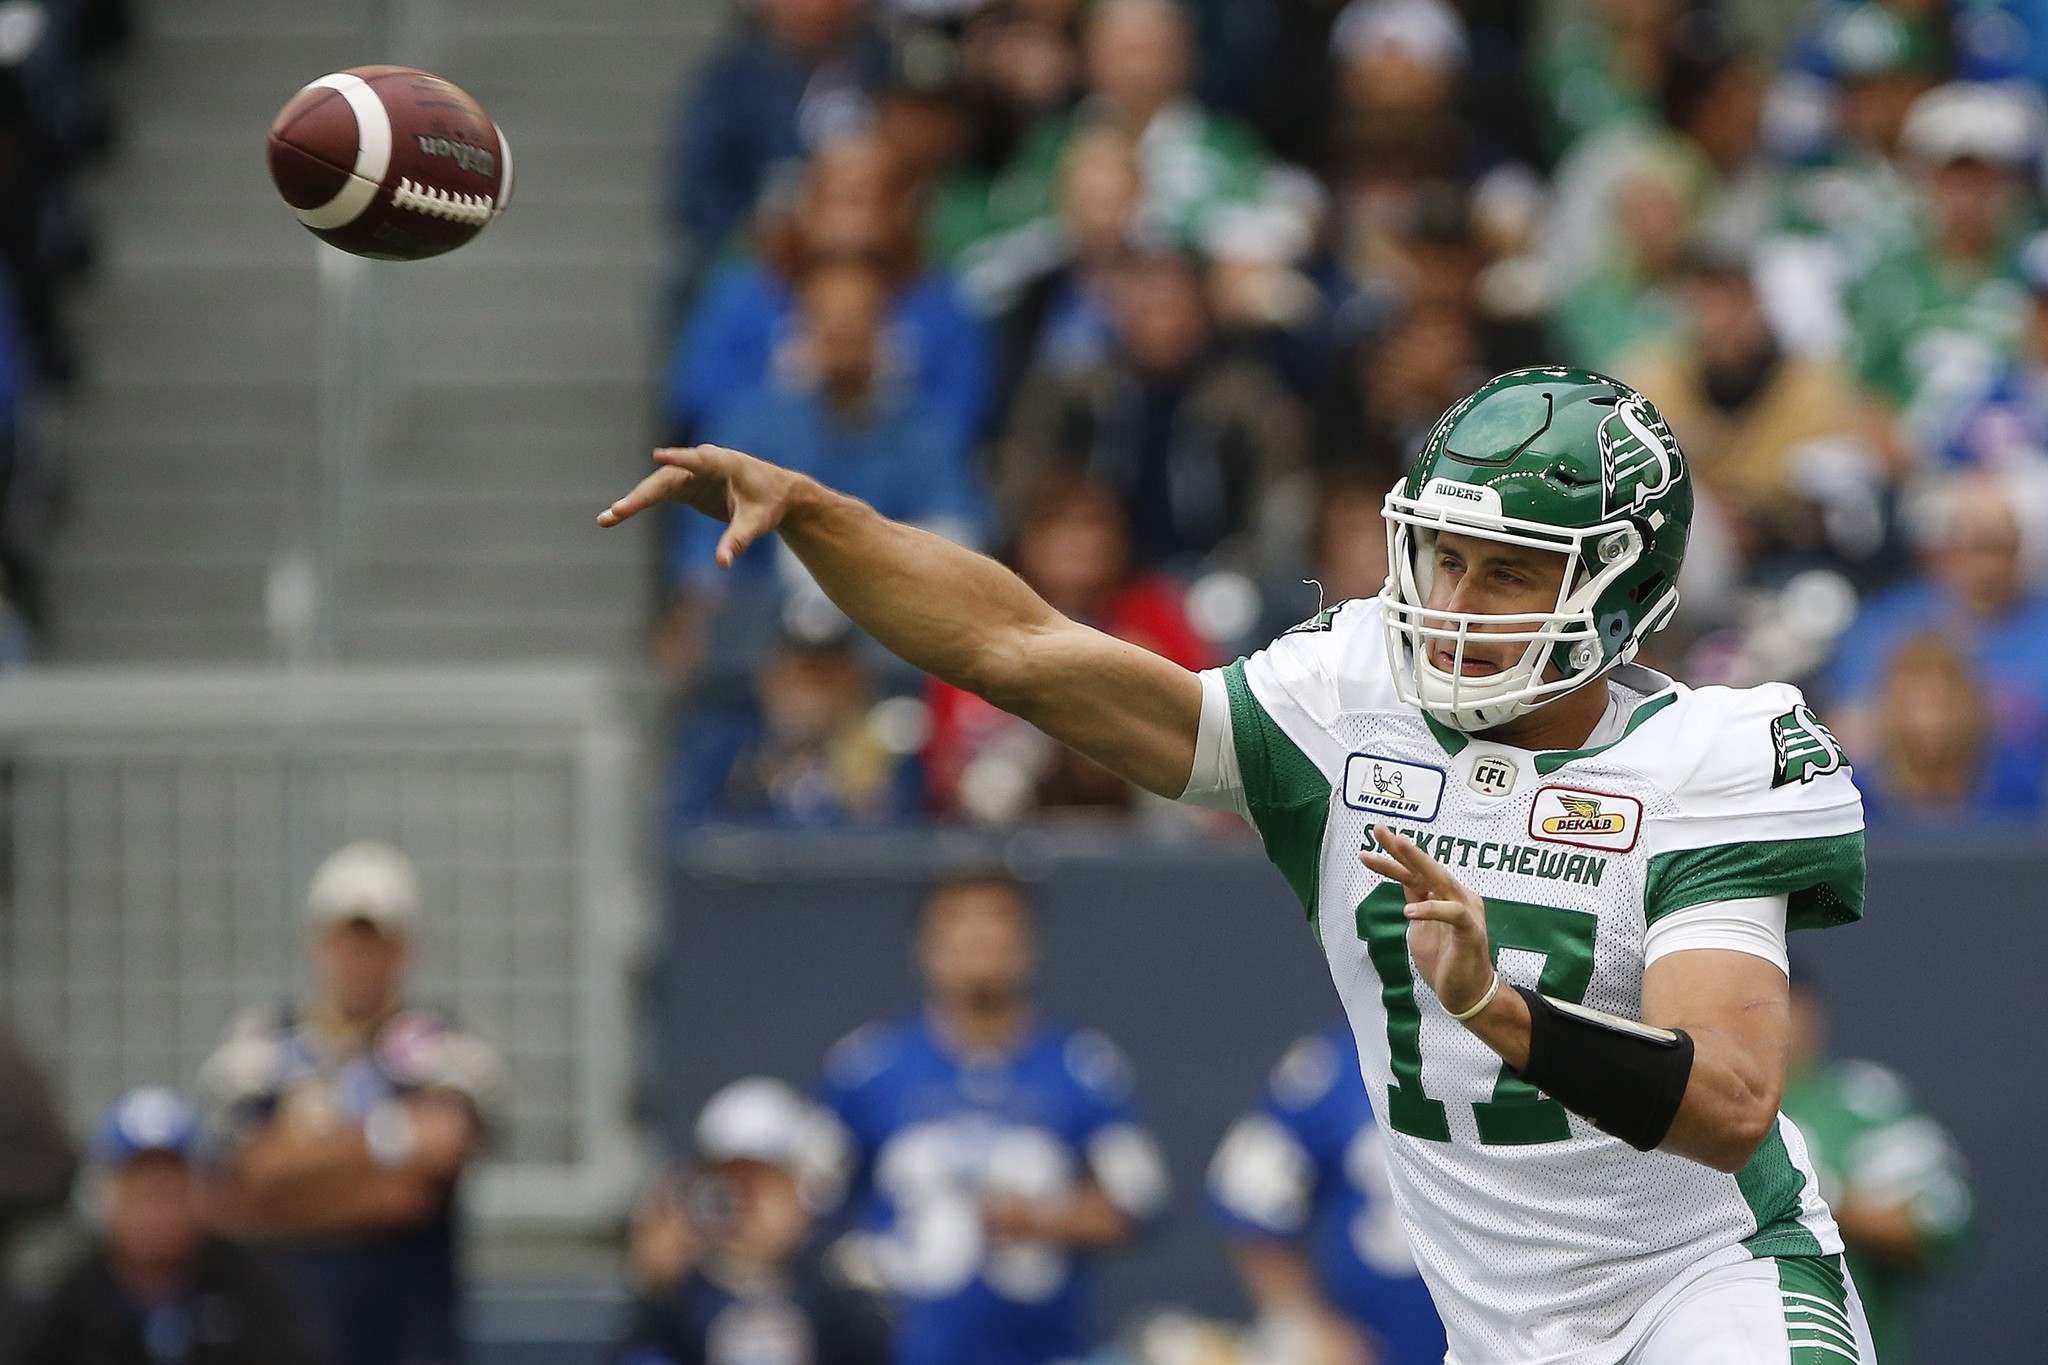 THE CANADIAN PRESS/John Woods</p><p>The Winnipeg Blue Bombers acquired quarterback Zach Collaros and a 2020 fifth-round selection from the Toronto Argonauts in exchange for a conditional 2020 third-round pick.</p>